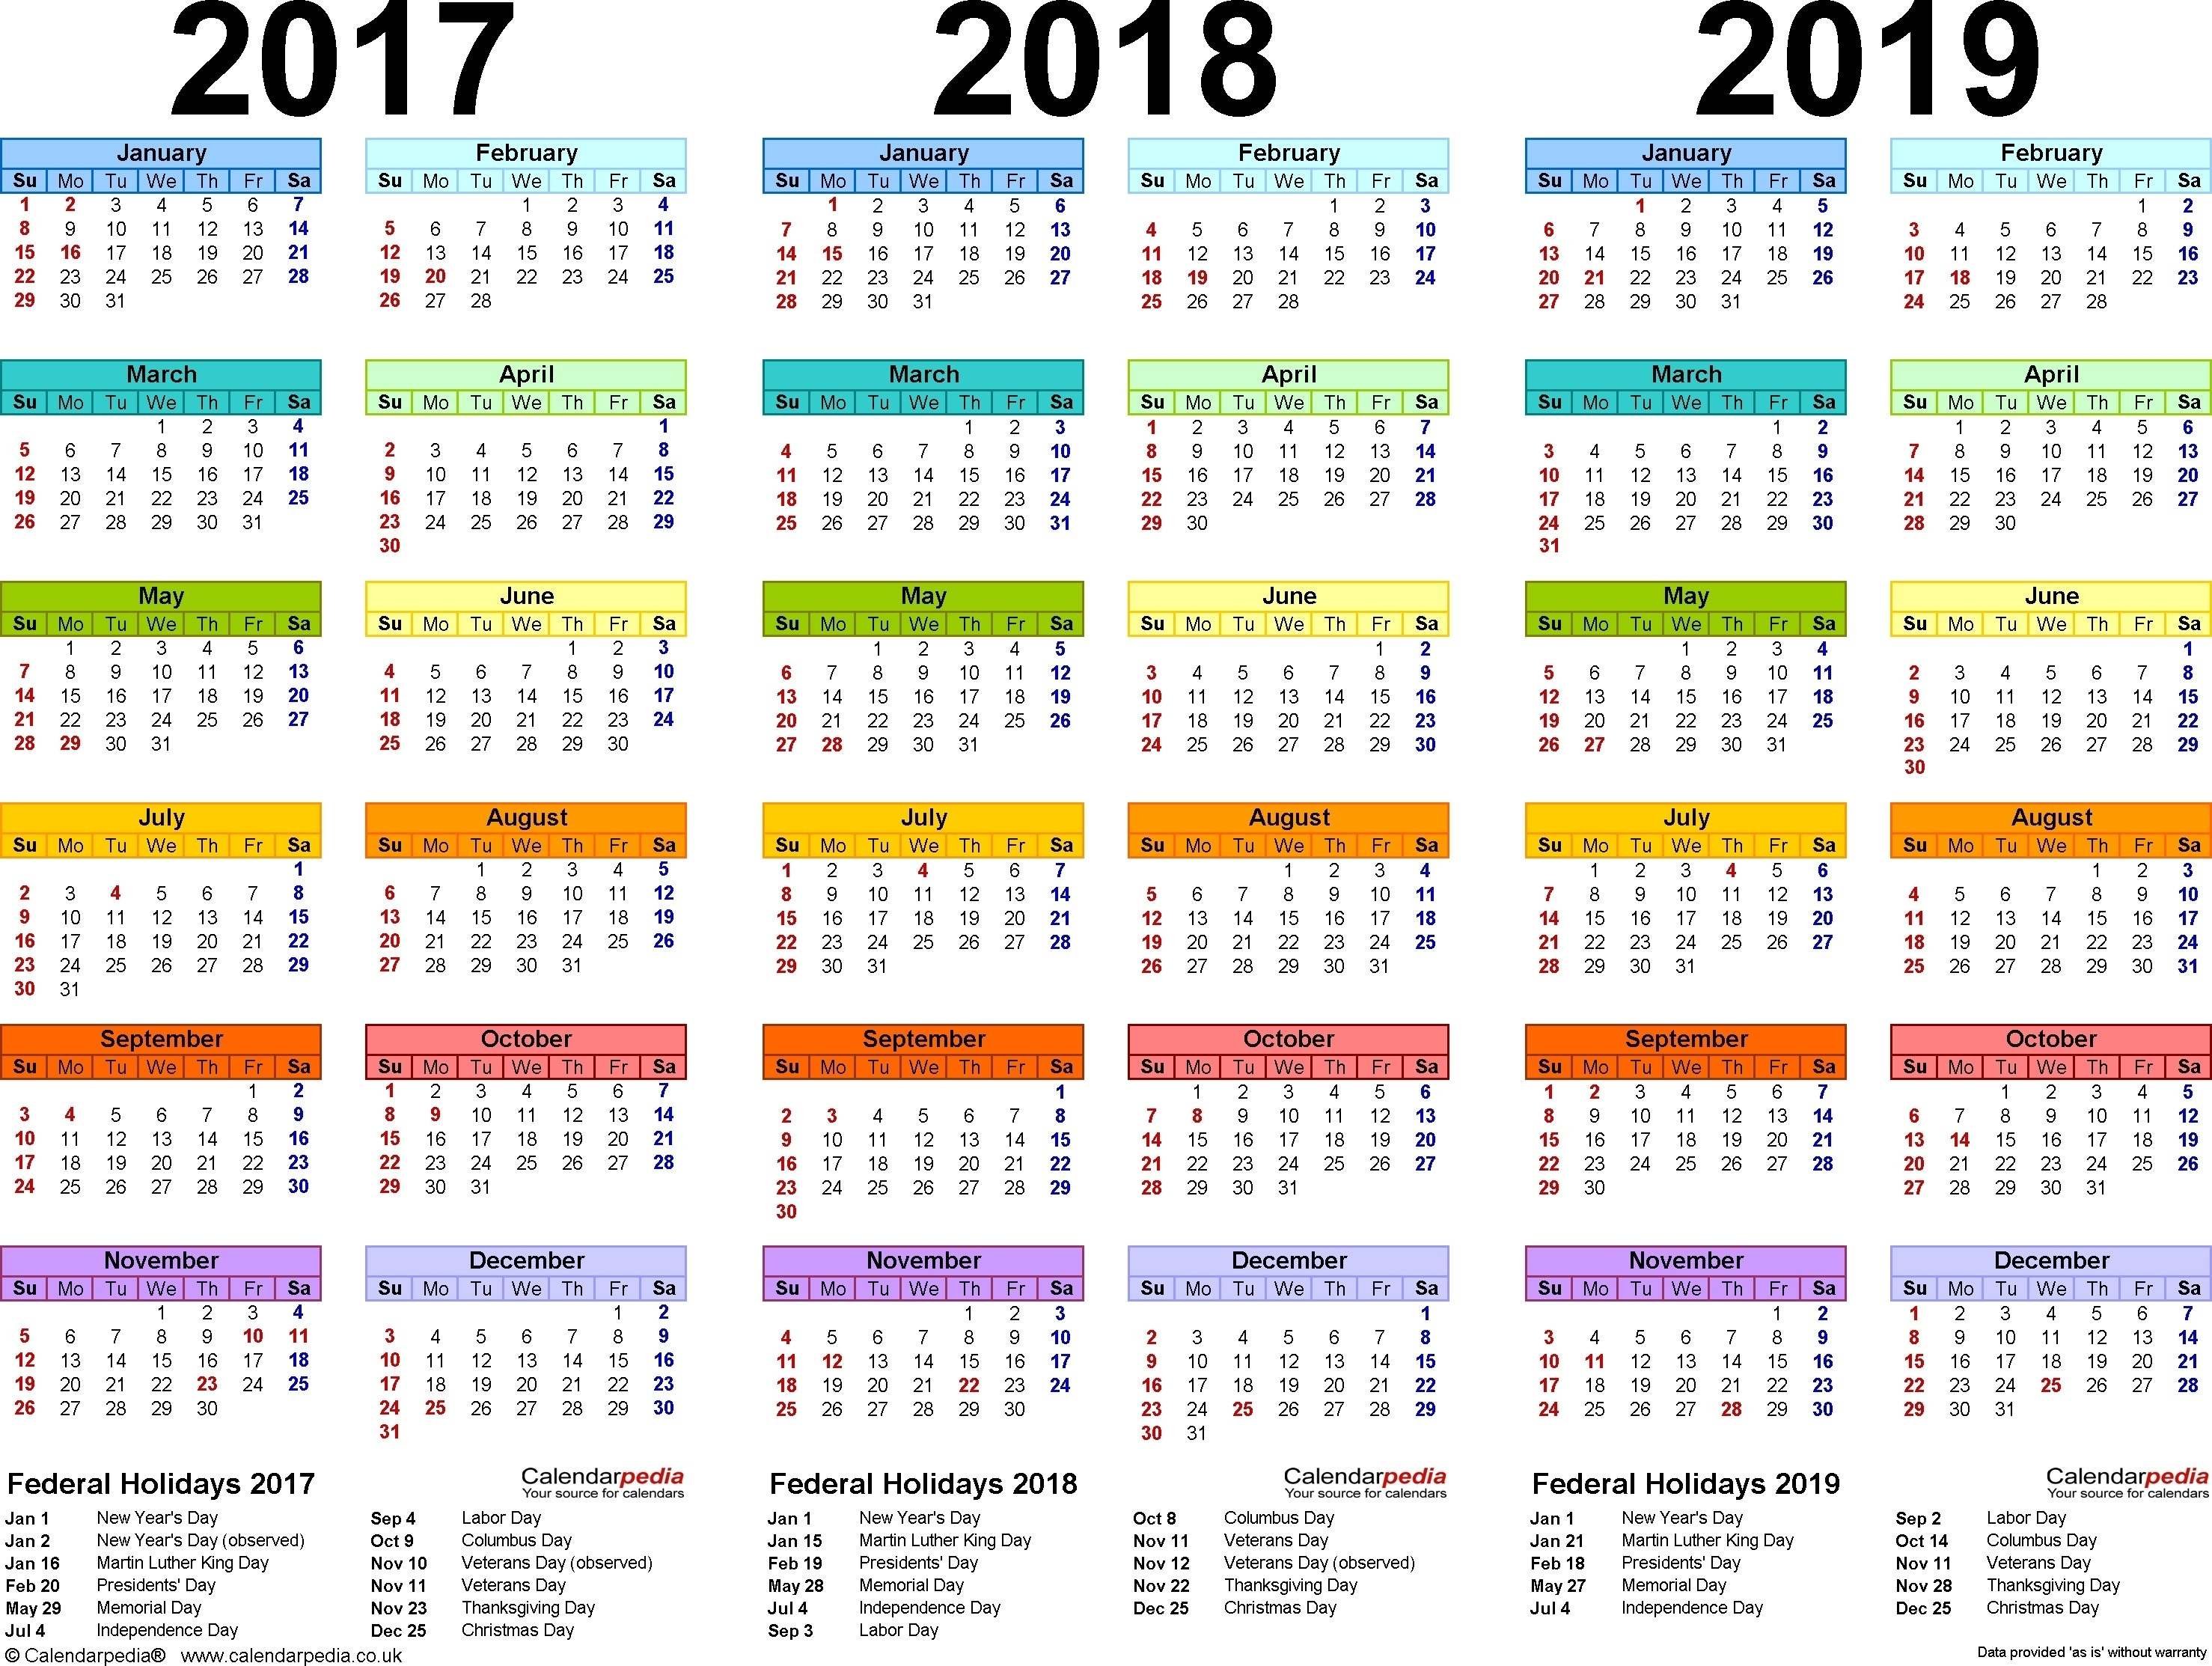 Collect Depo-Provera Perpetual Calendar 2019 For August